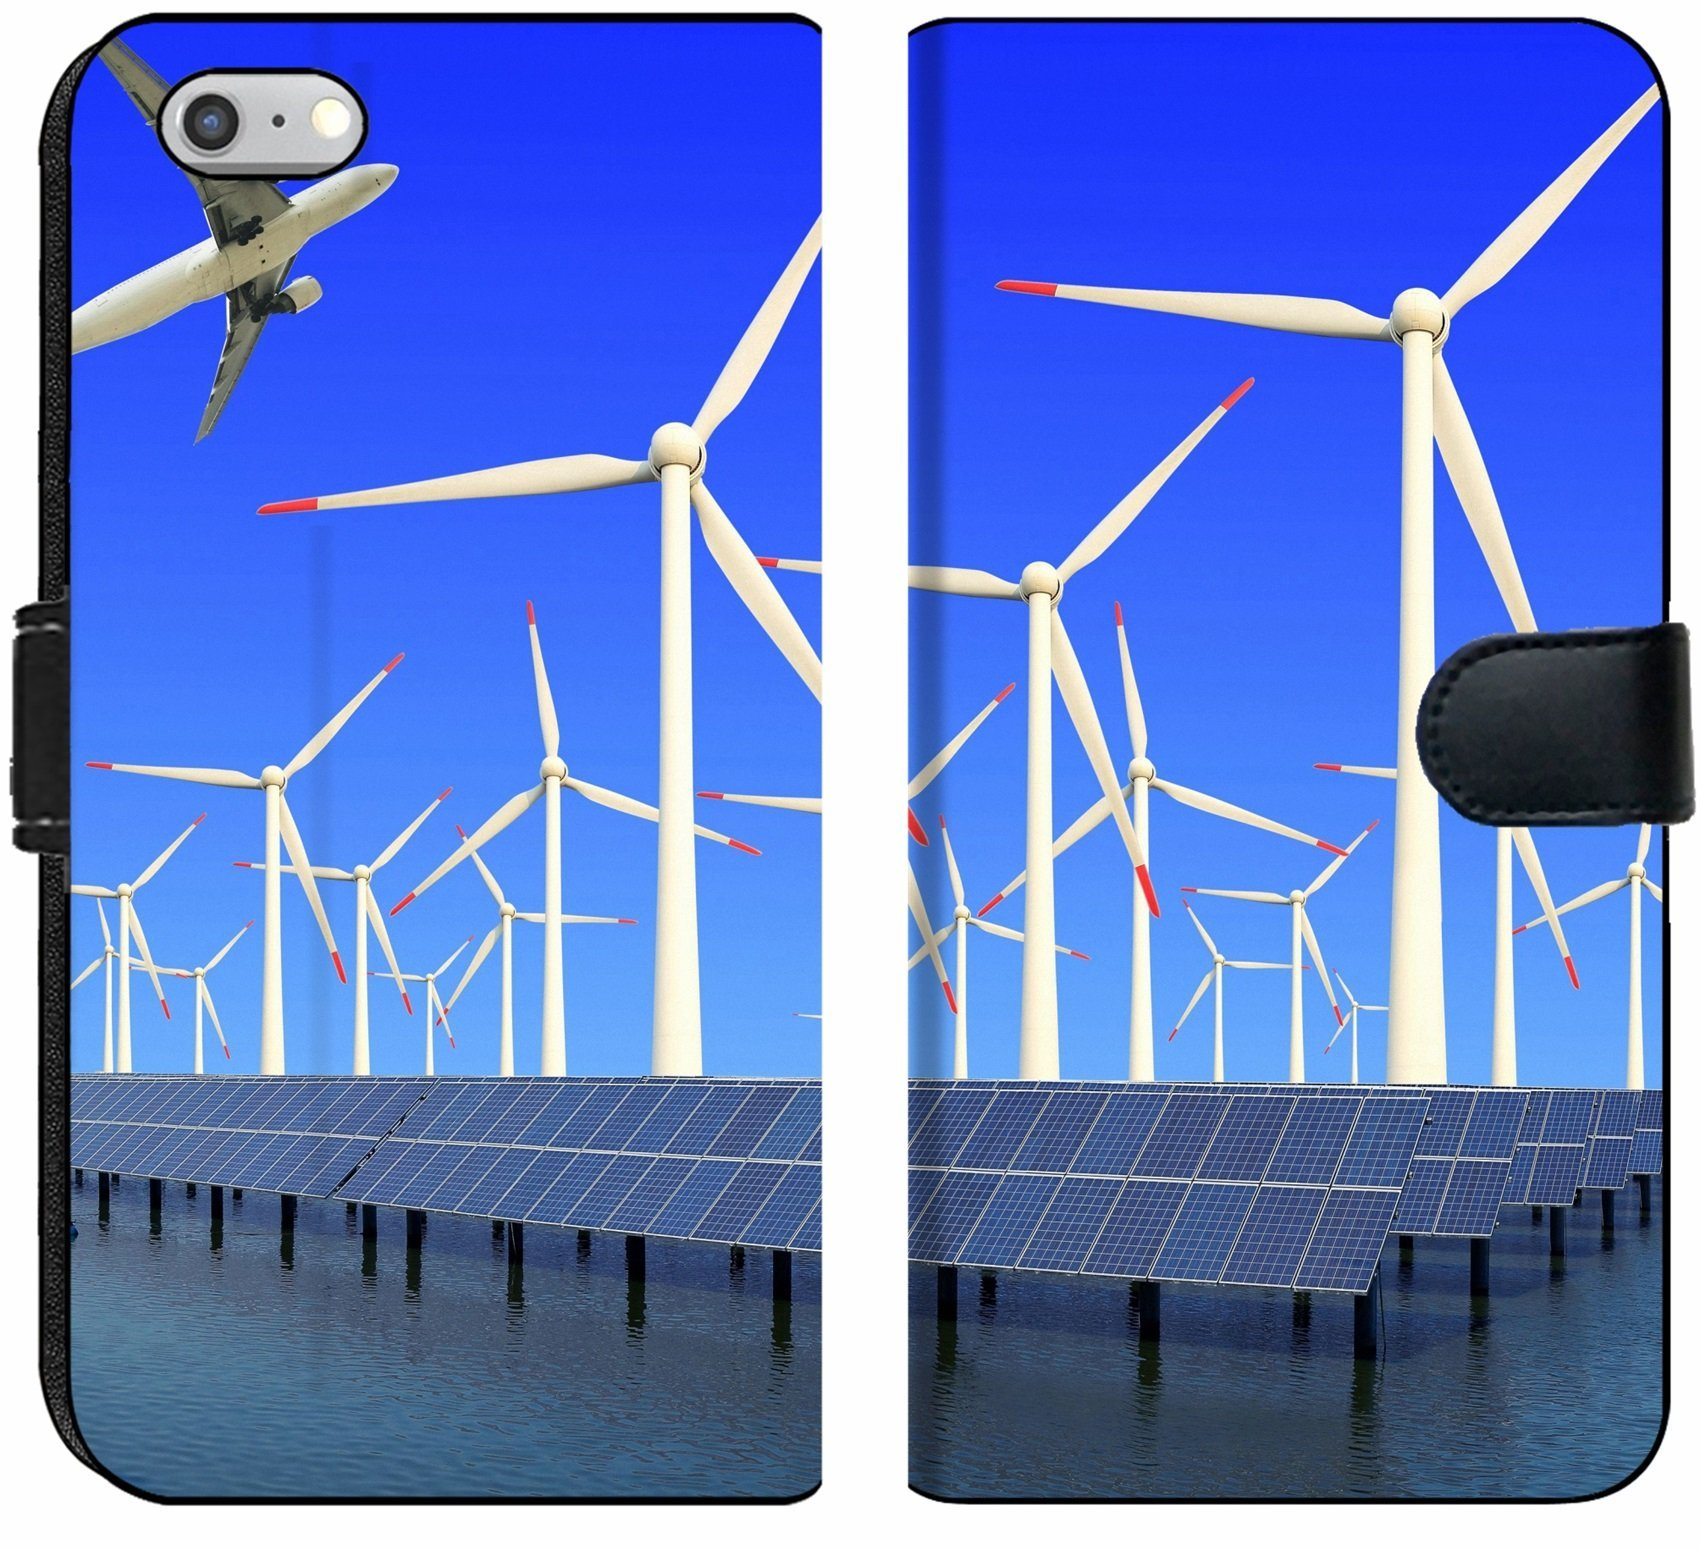 Apple iPhone 6 and iPhone 6s Flip Fabric Wallet Case Image ID 19576484 Aircraft is Flying in eco Power of Wind turbines and Solar Panel at c